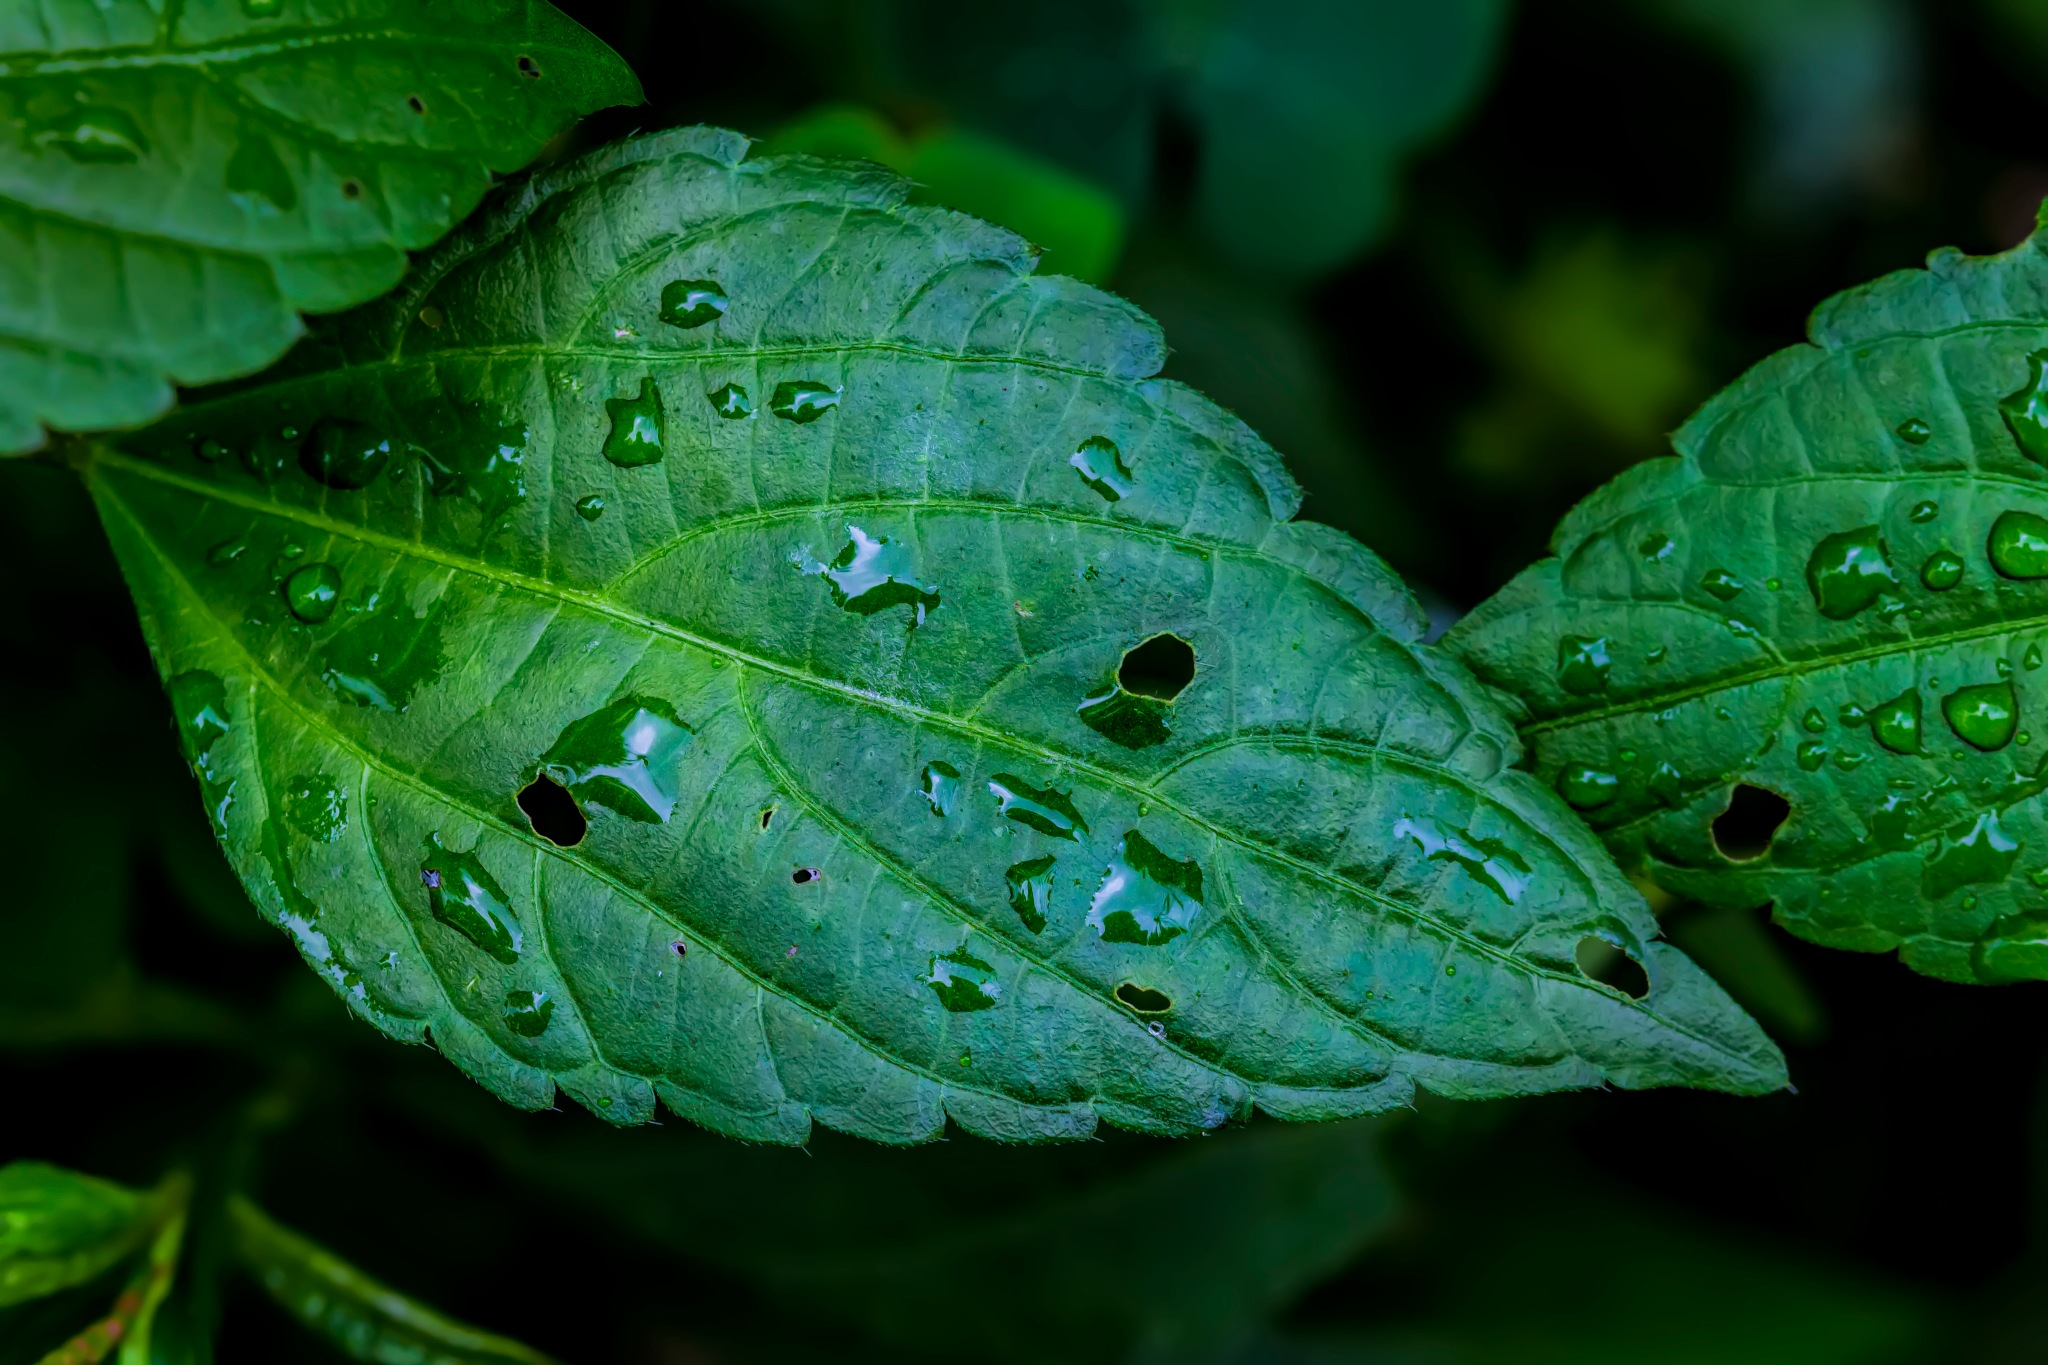 Raindrops and Leaves by robertullmann